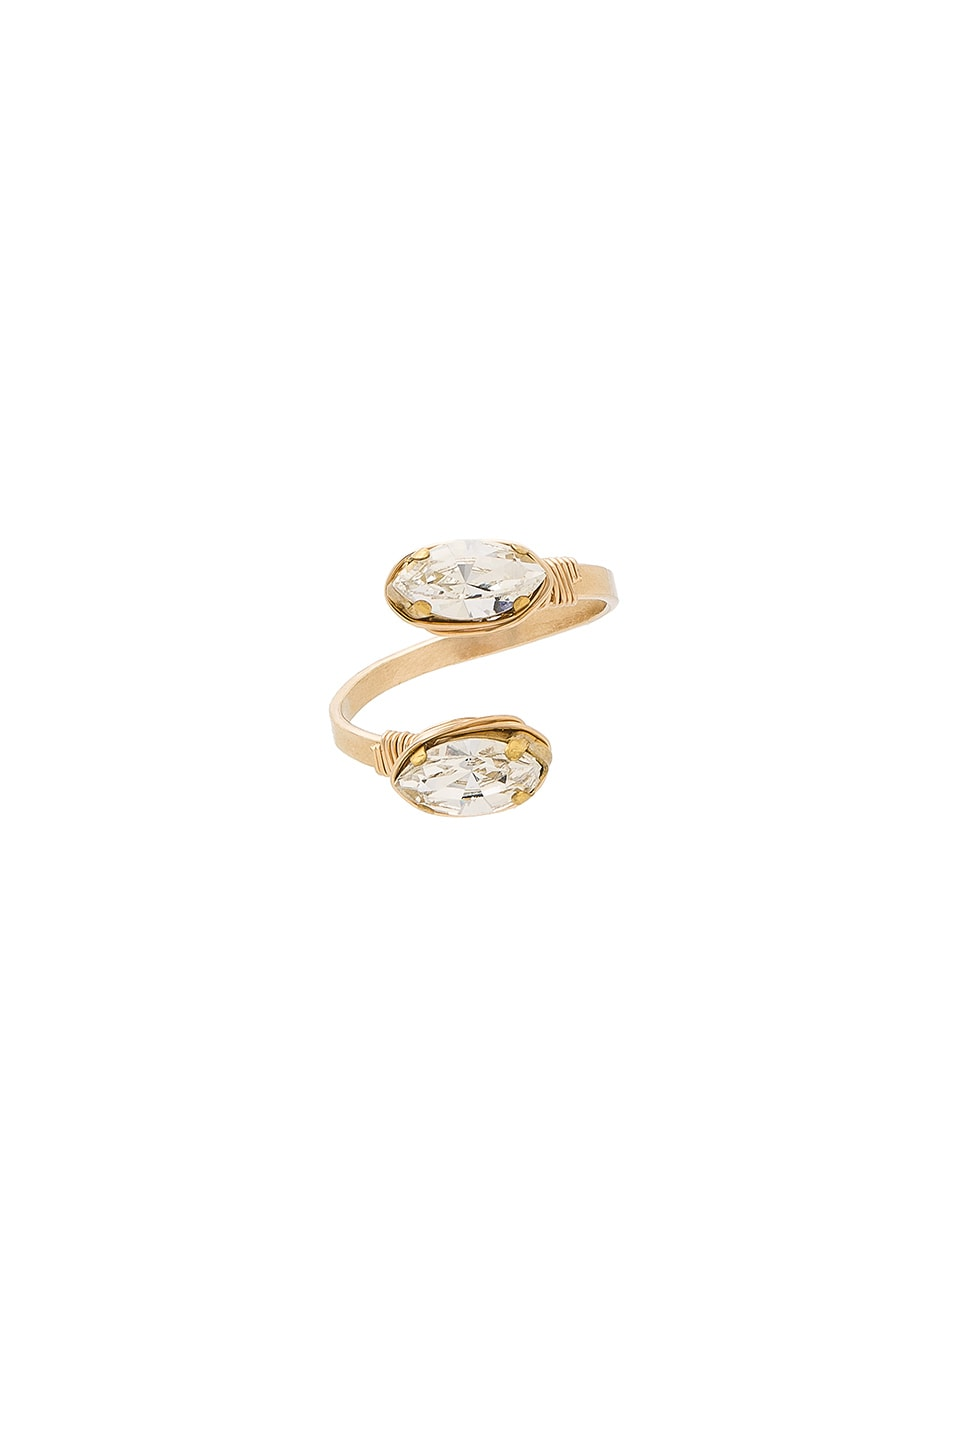 Mimi & Lu Scarlett Ring in Gold & Clear